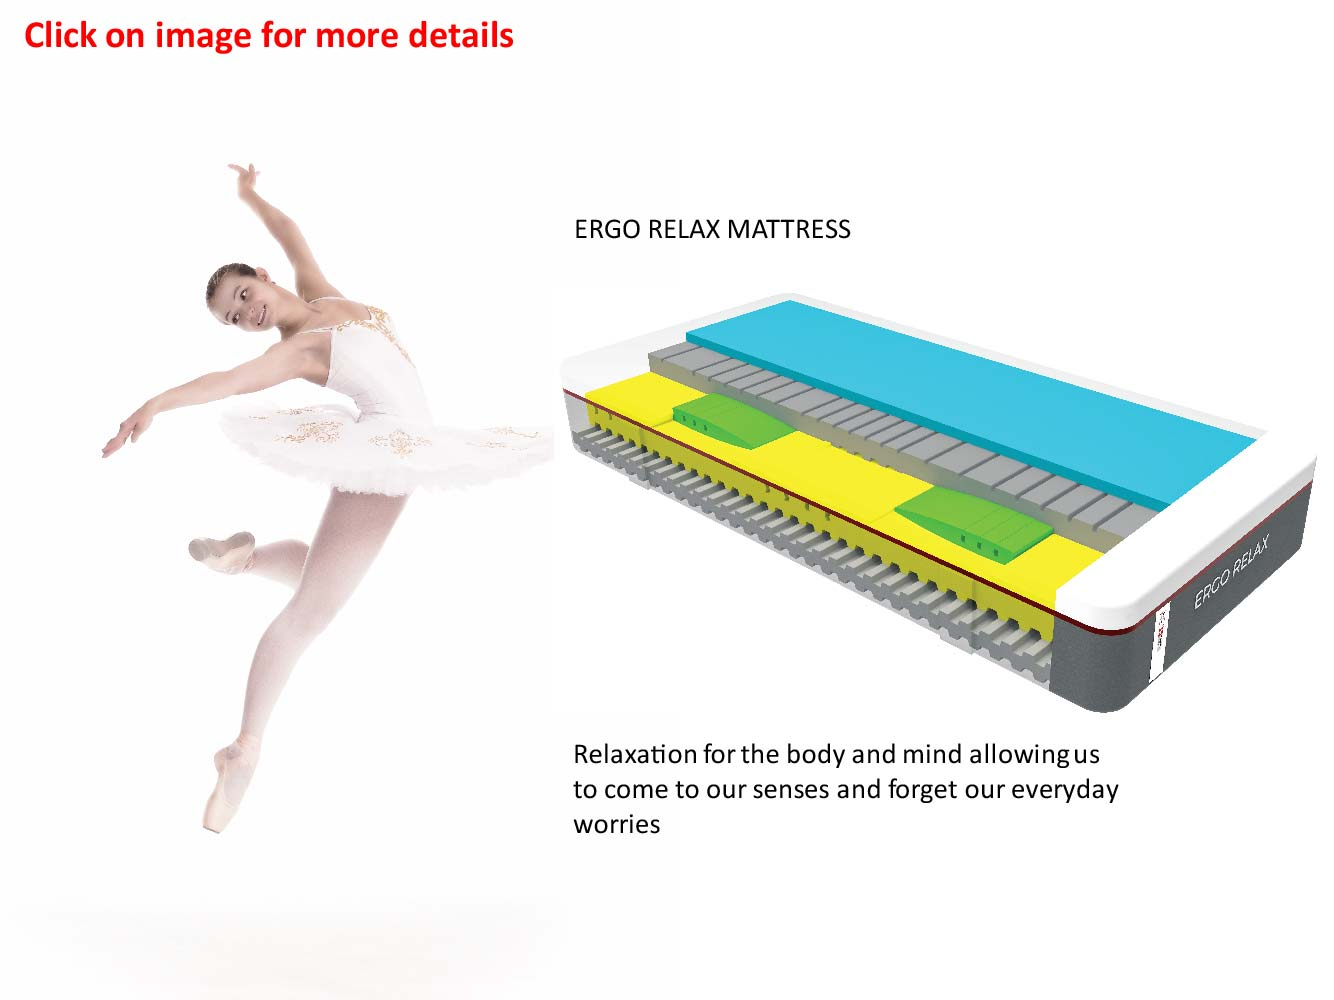 Swissaire True Ergonomics - Ergo Relax mattress